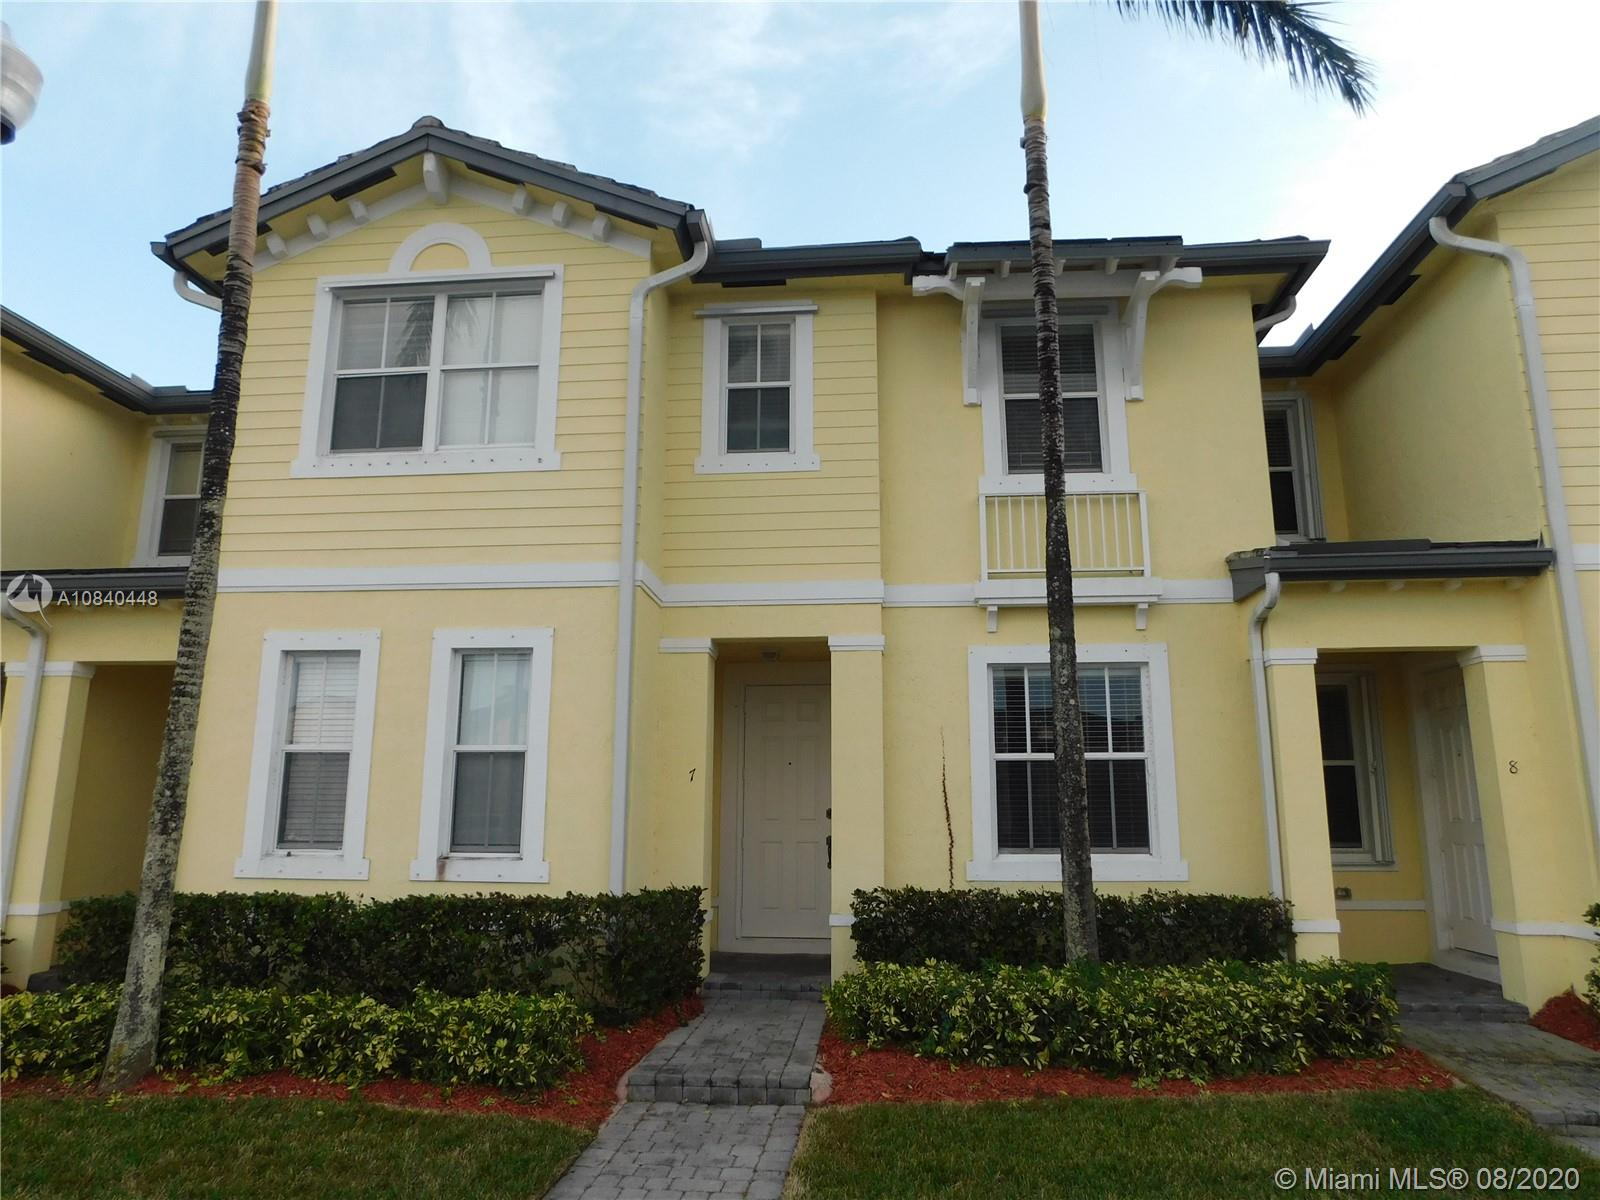 2928 SE 2nd St #7, Homestead, FL 33033 - Homestead, FL real estate listing